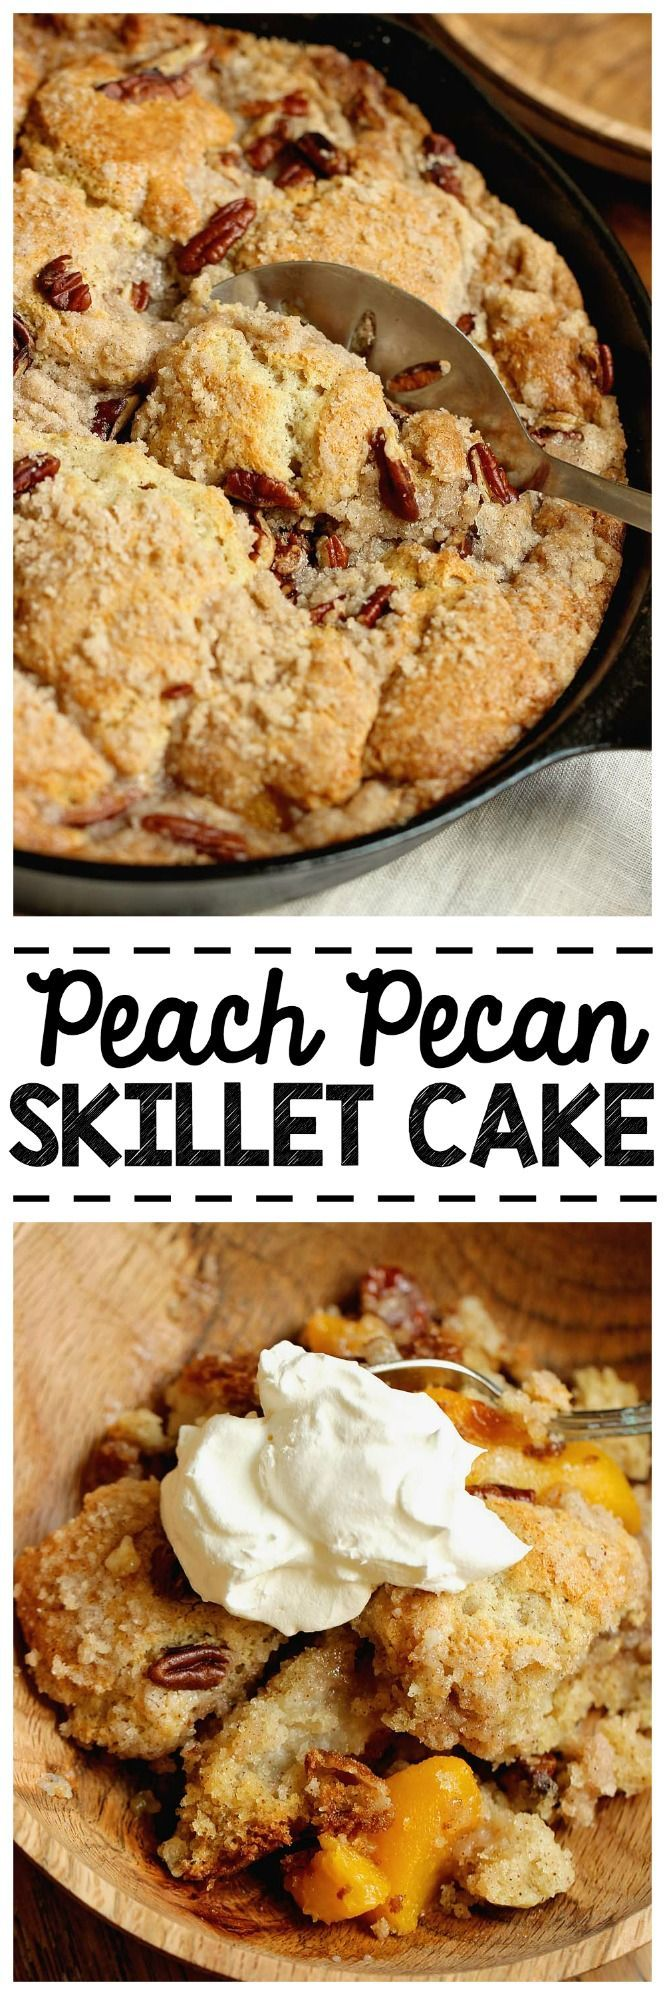 Easy Peach Pecan Skillet Cake - A simple and comforting peach dessert with some surprising ingredients in the batter that make this cake divine!